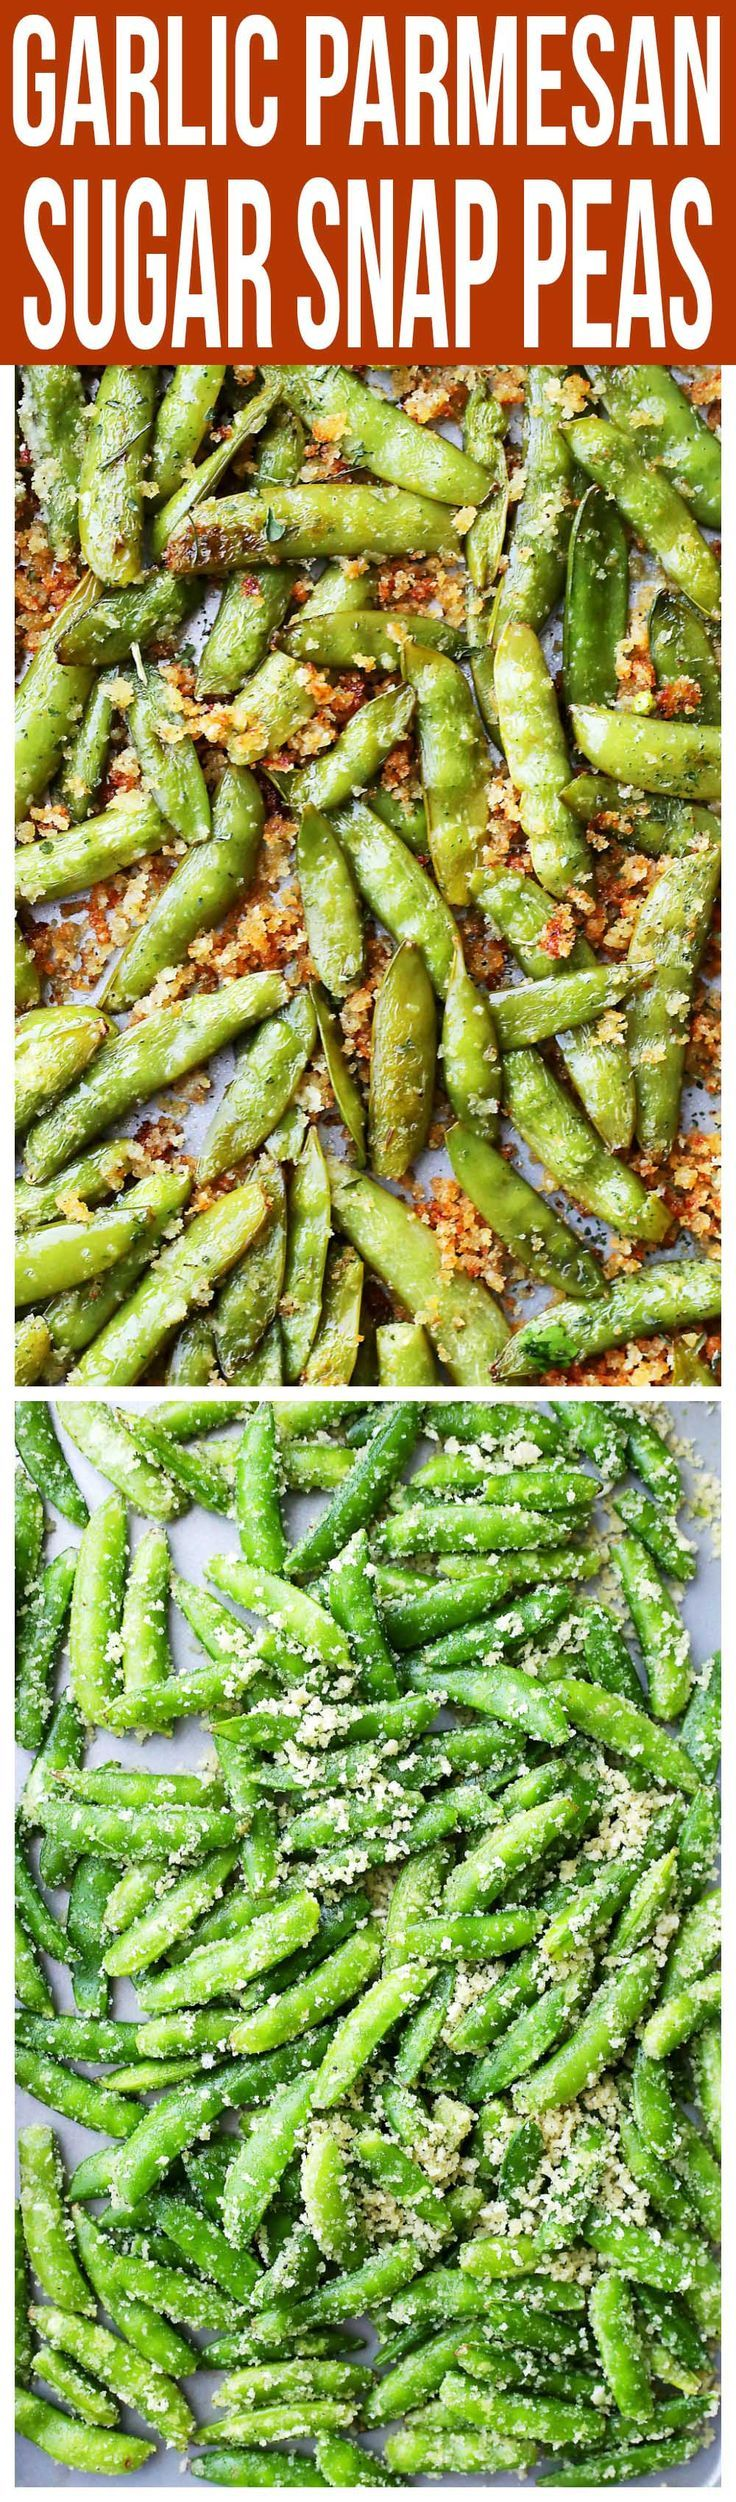 20+ Sugar Snap Peas ideas on Pinterest | Cooking sugar snap peas, Snap ...